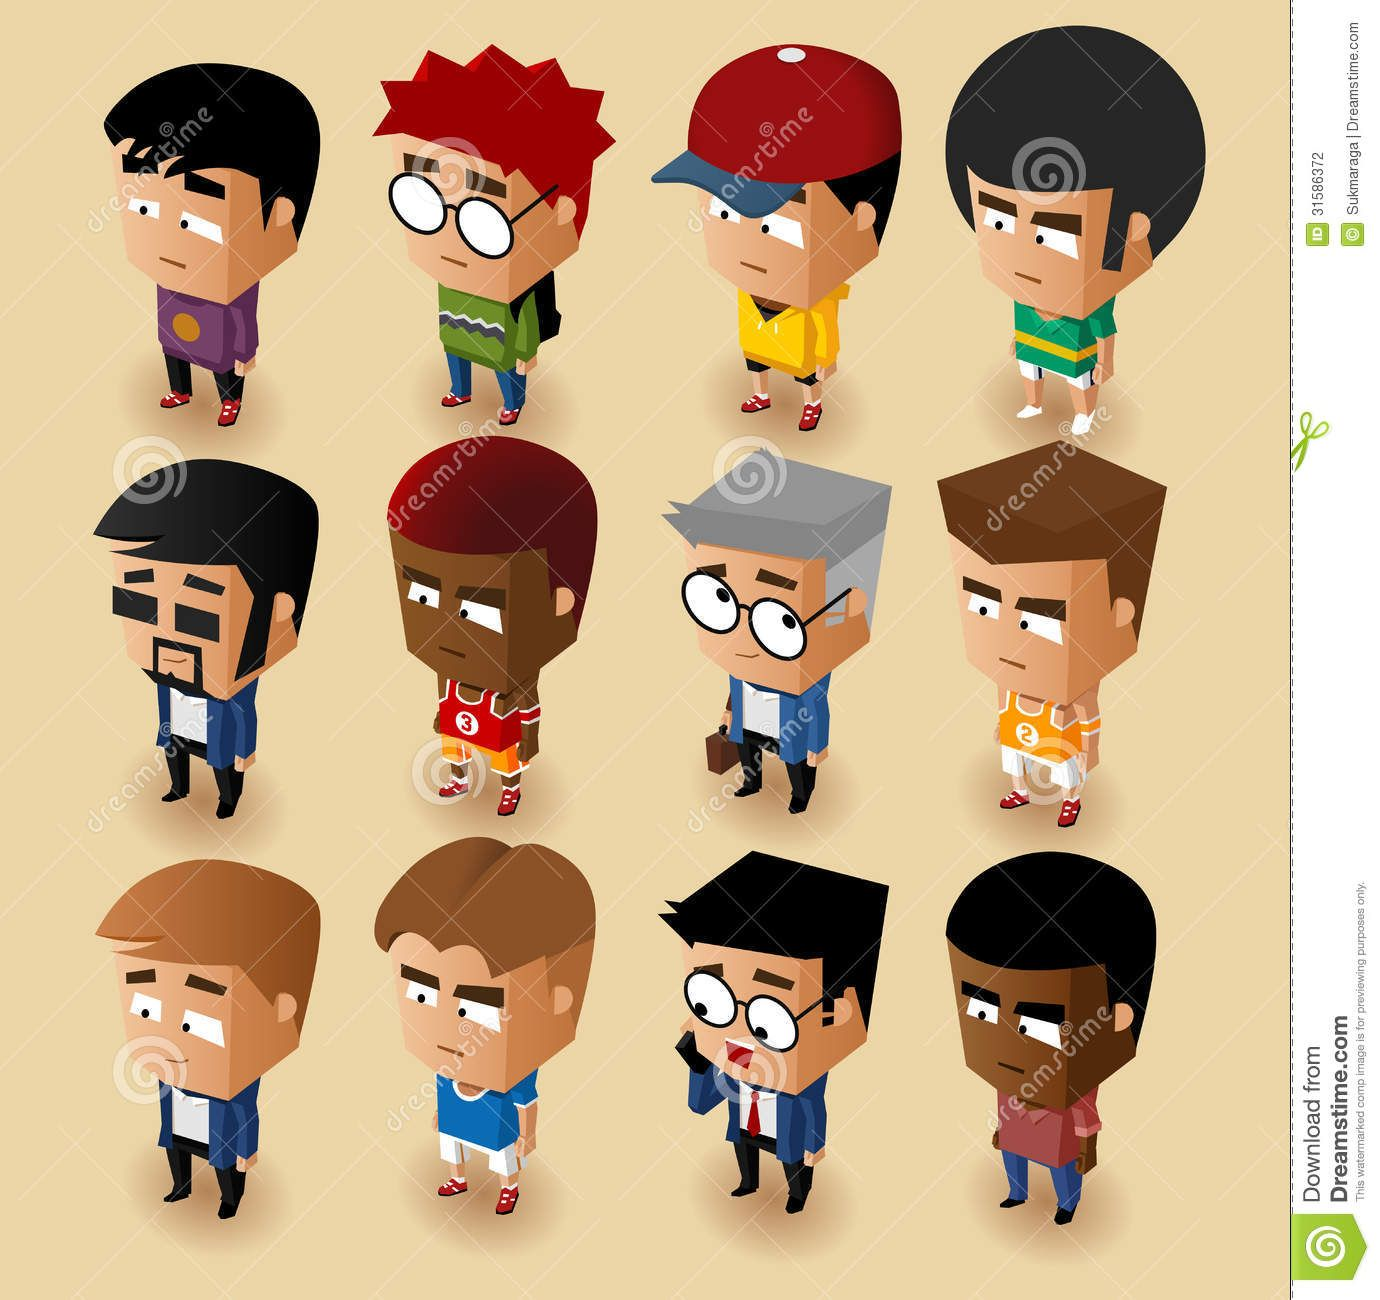 Simple Character Design Illustrator : 2d character illustrator google search character pinterest